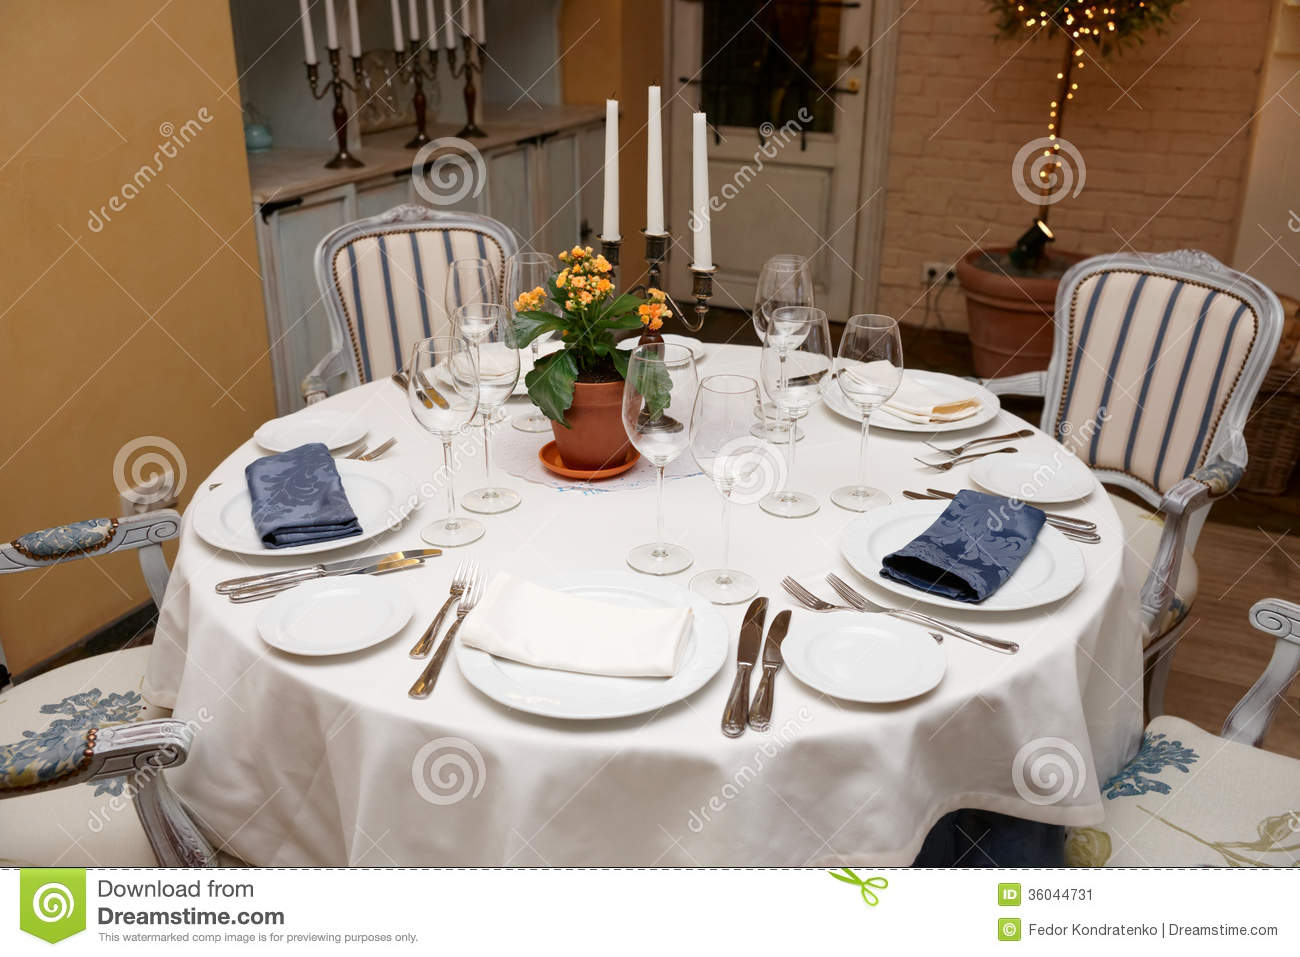 Table setting in a restaurant stock image image 36044731 for At the table restaurant